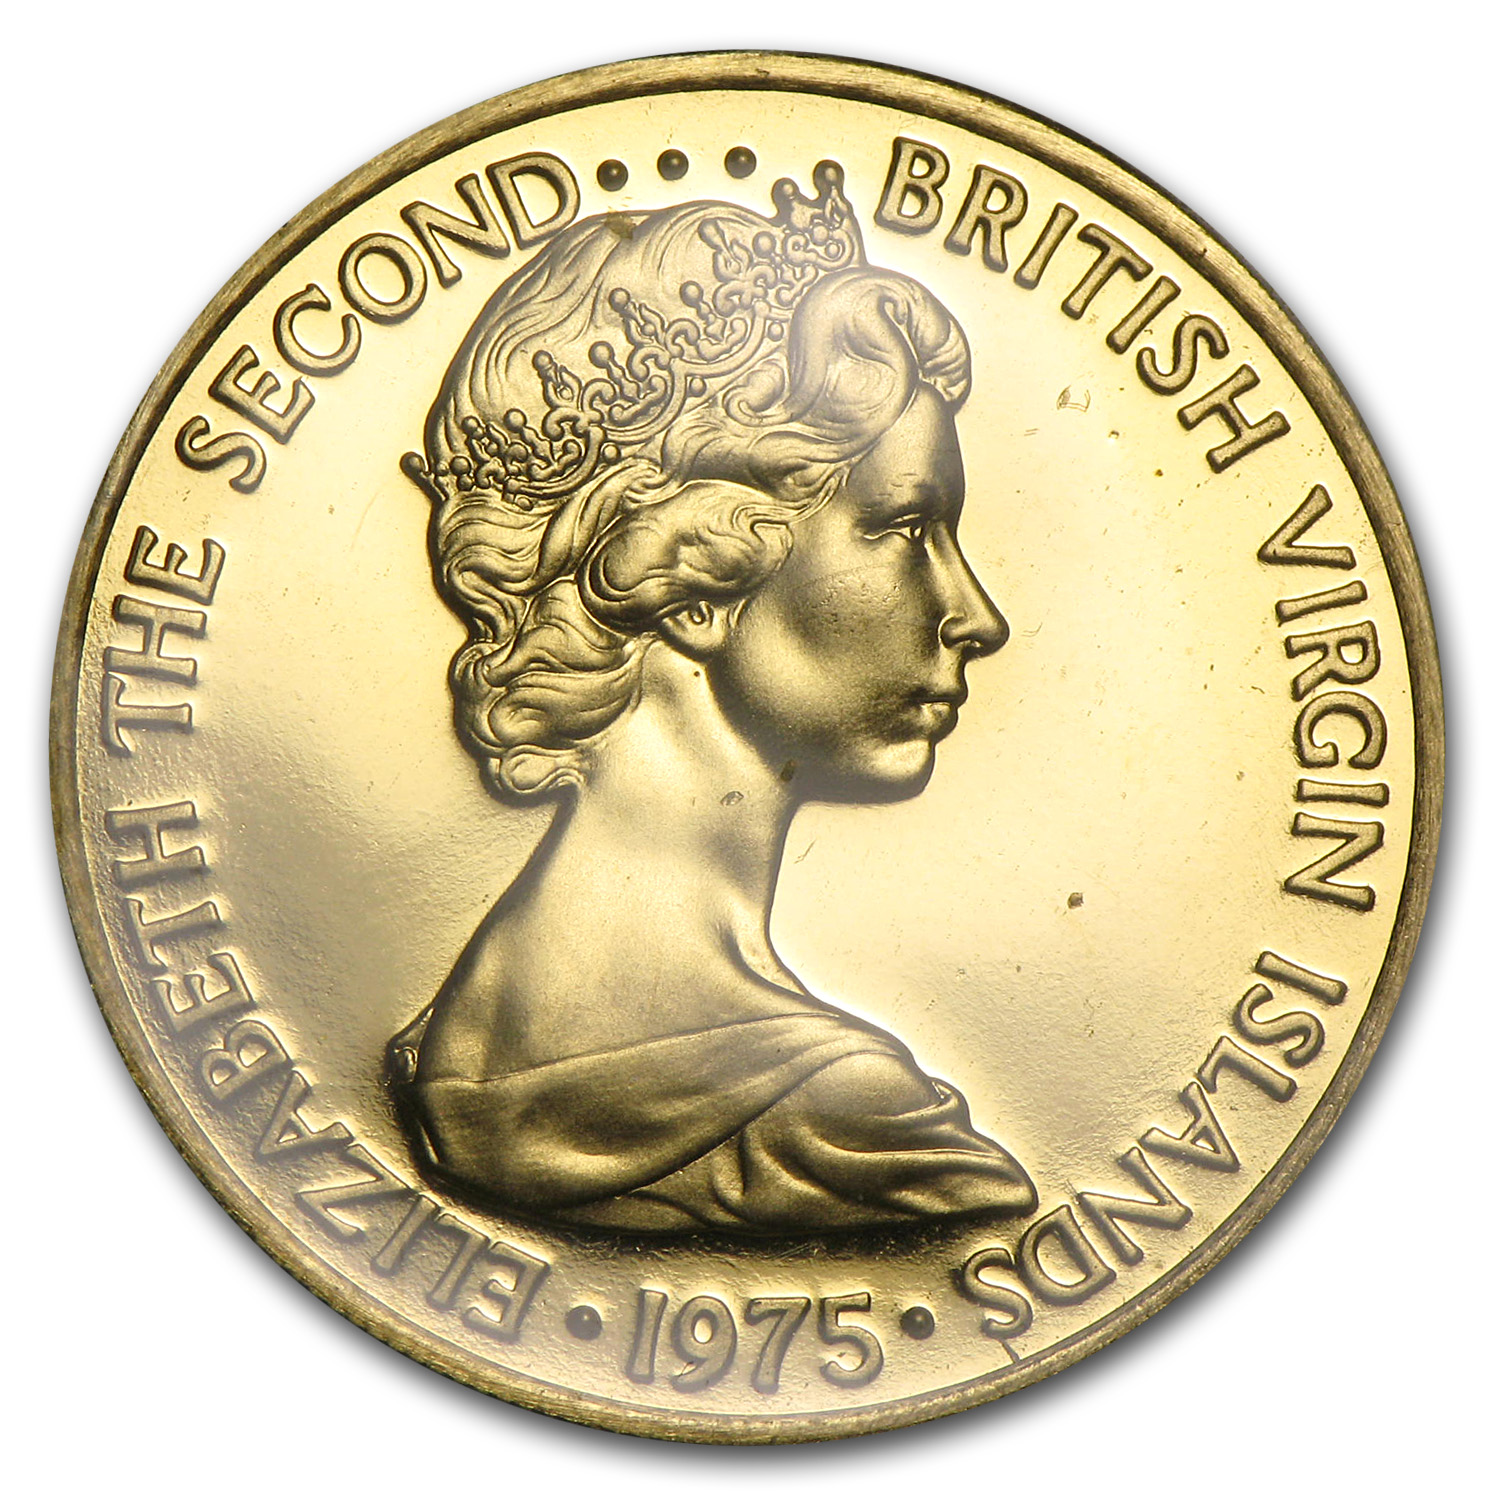 British Virgin Islands 1975 Gold 100 Dollar